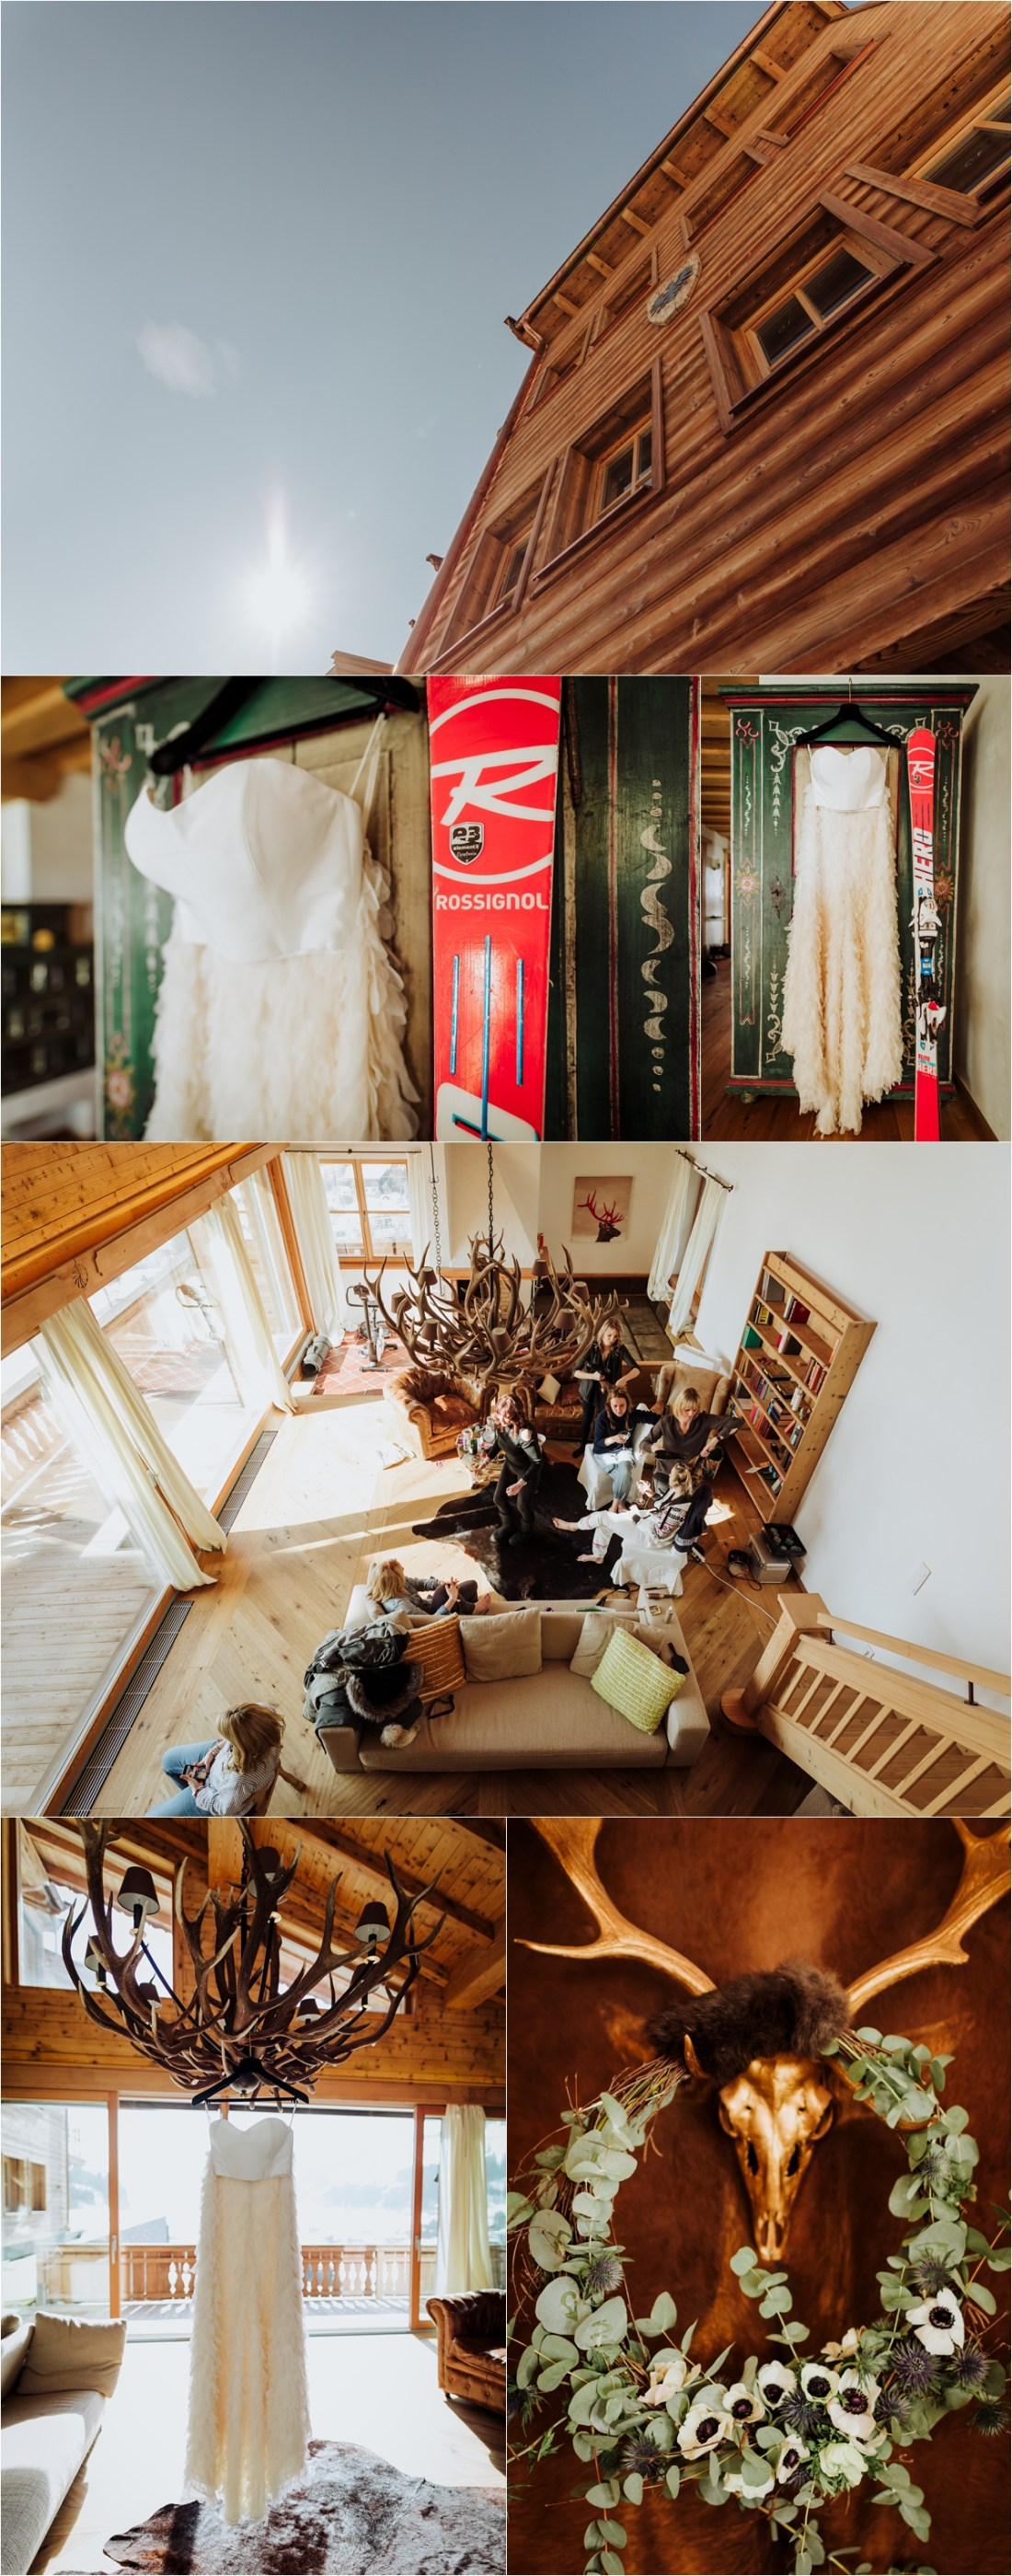 The bride gets ready in a ski chalet for her ski resort wedding in Austria by Wild Connections Photography